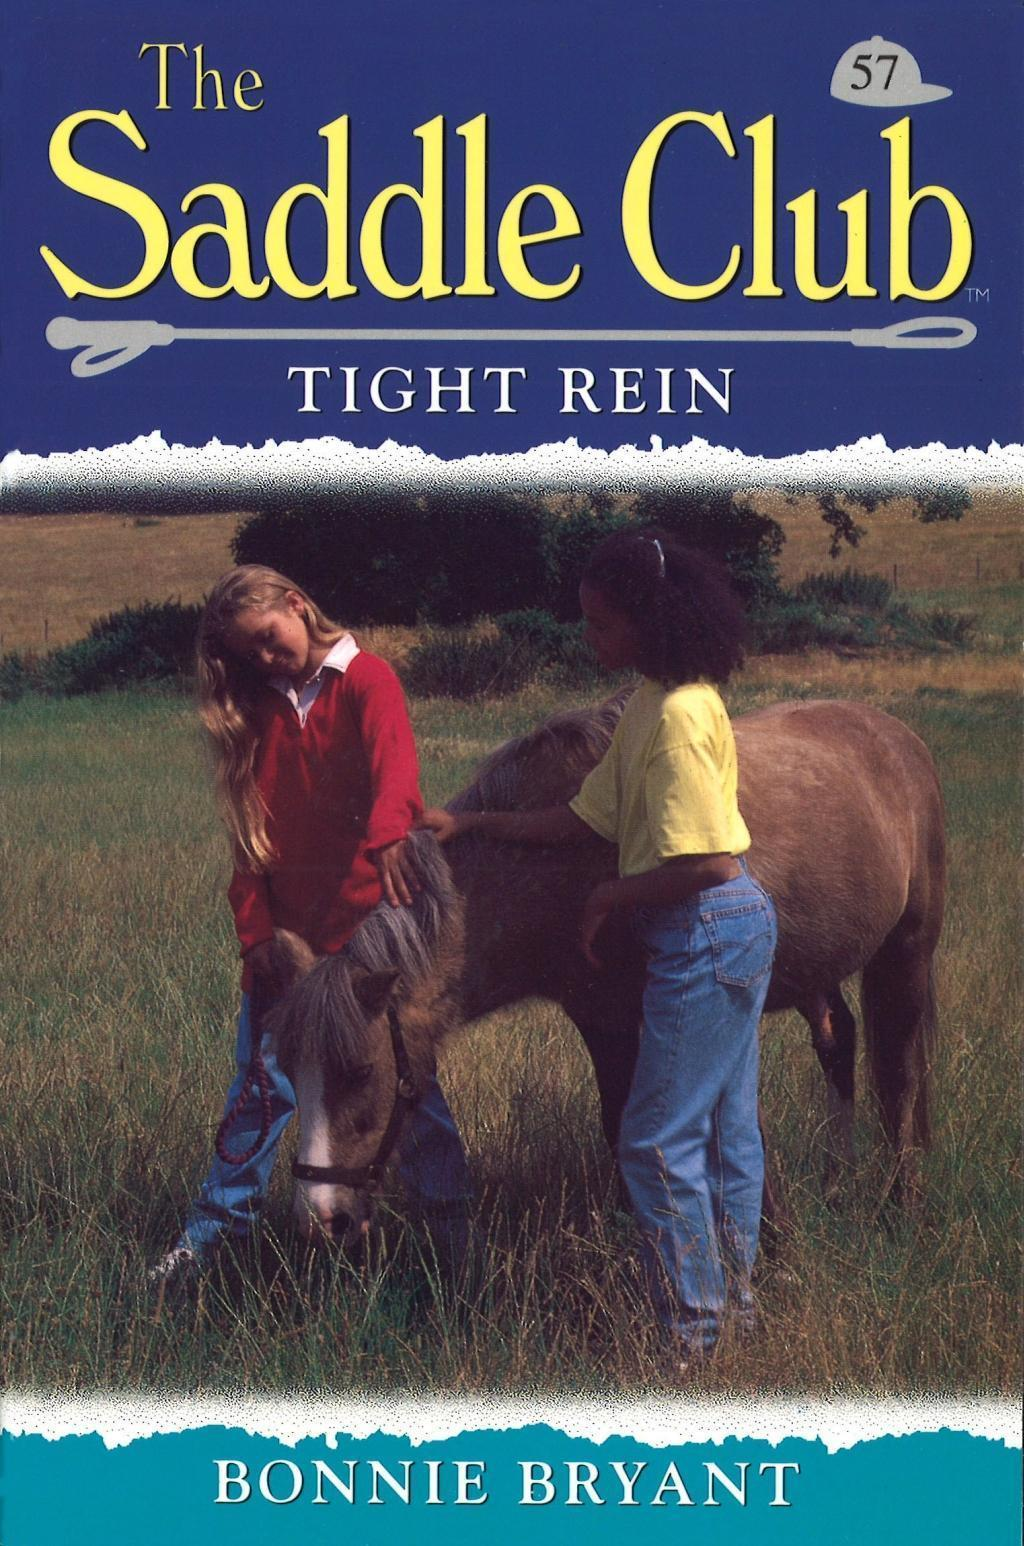 Saddle Club 57: Tight Rein